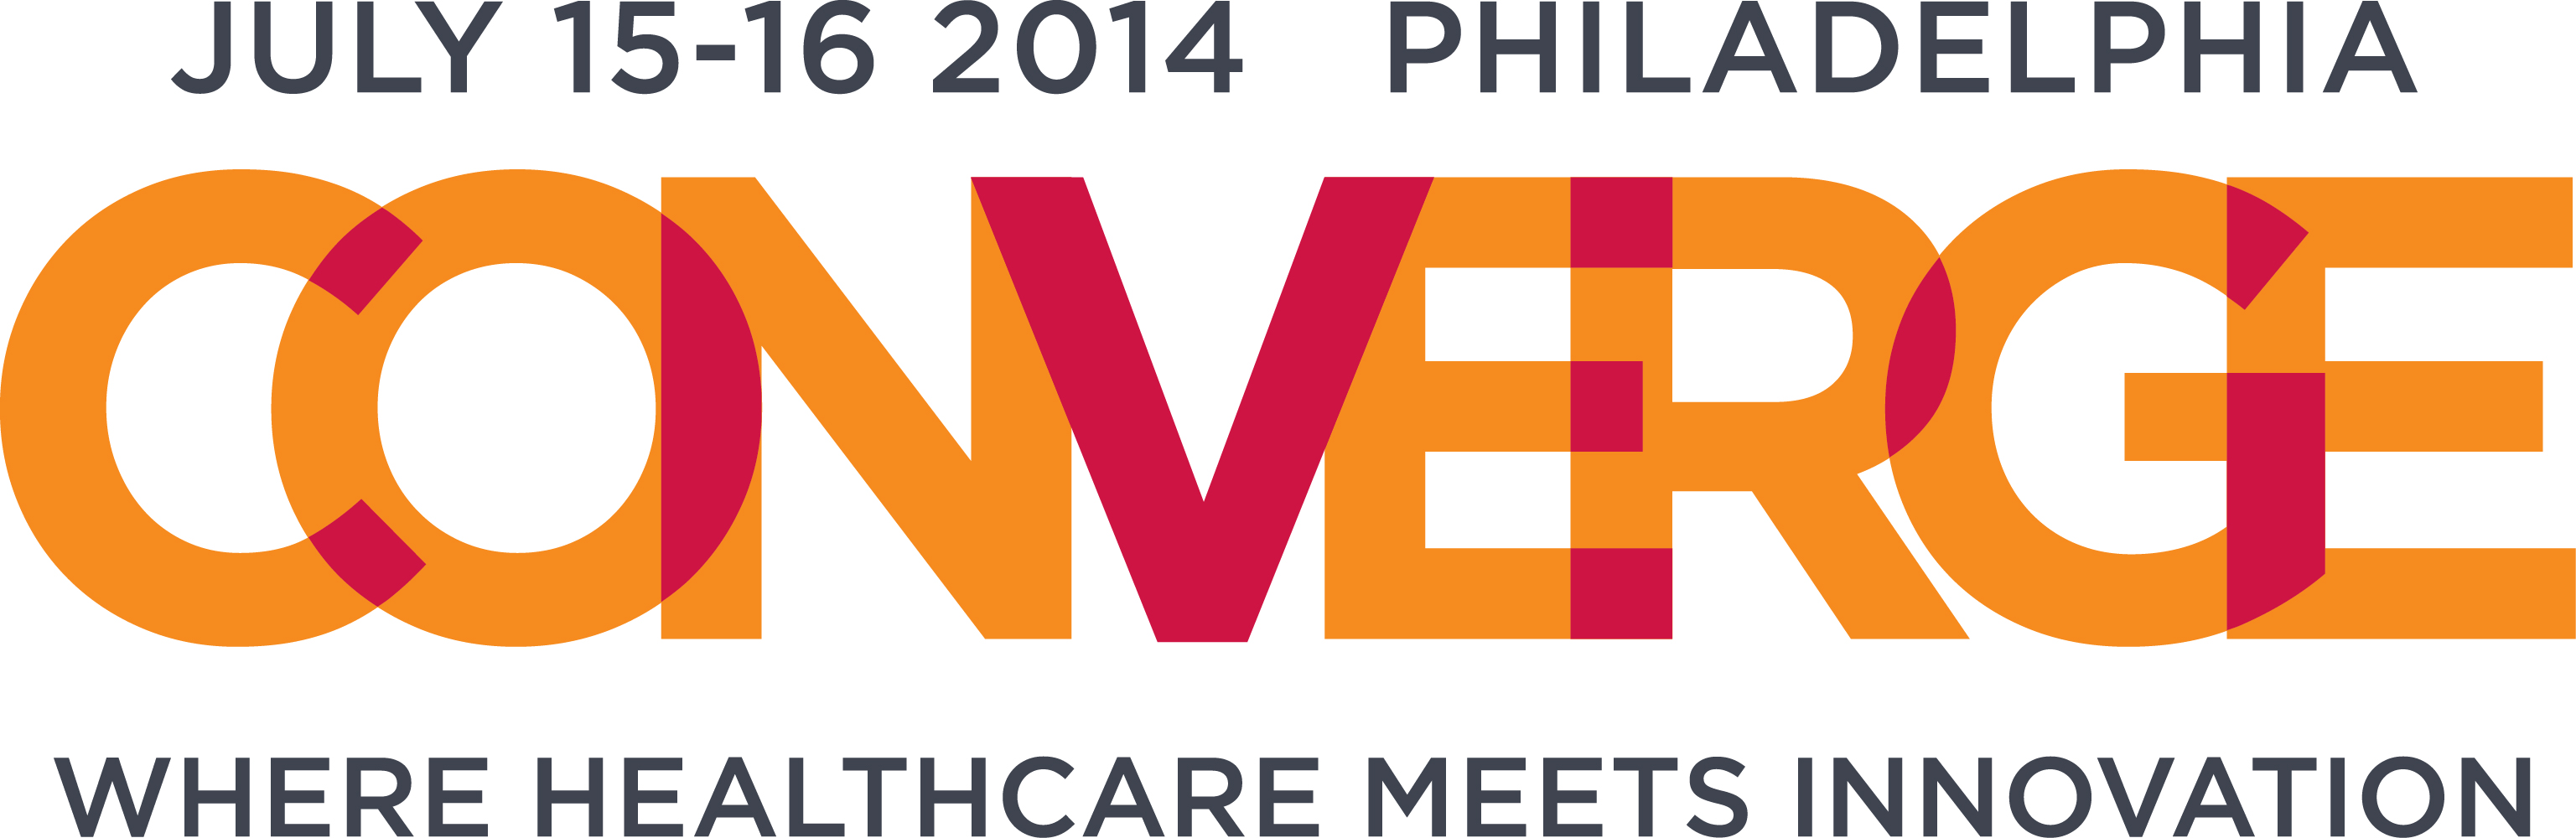 CONVERGE keynotes will show how they are leading the way in healthcare innovation